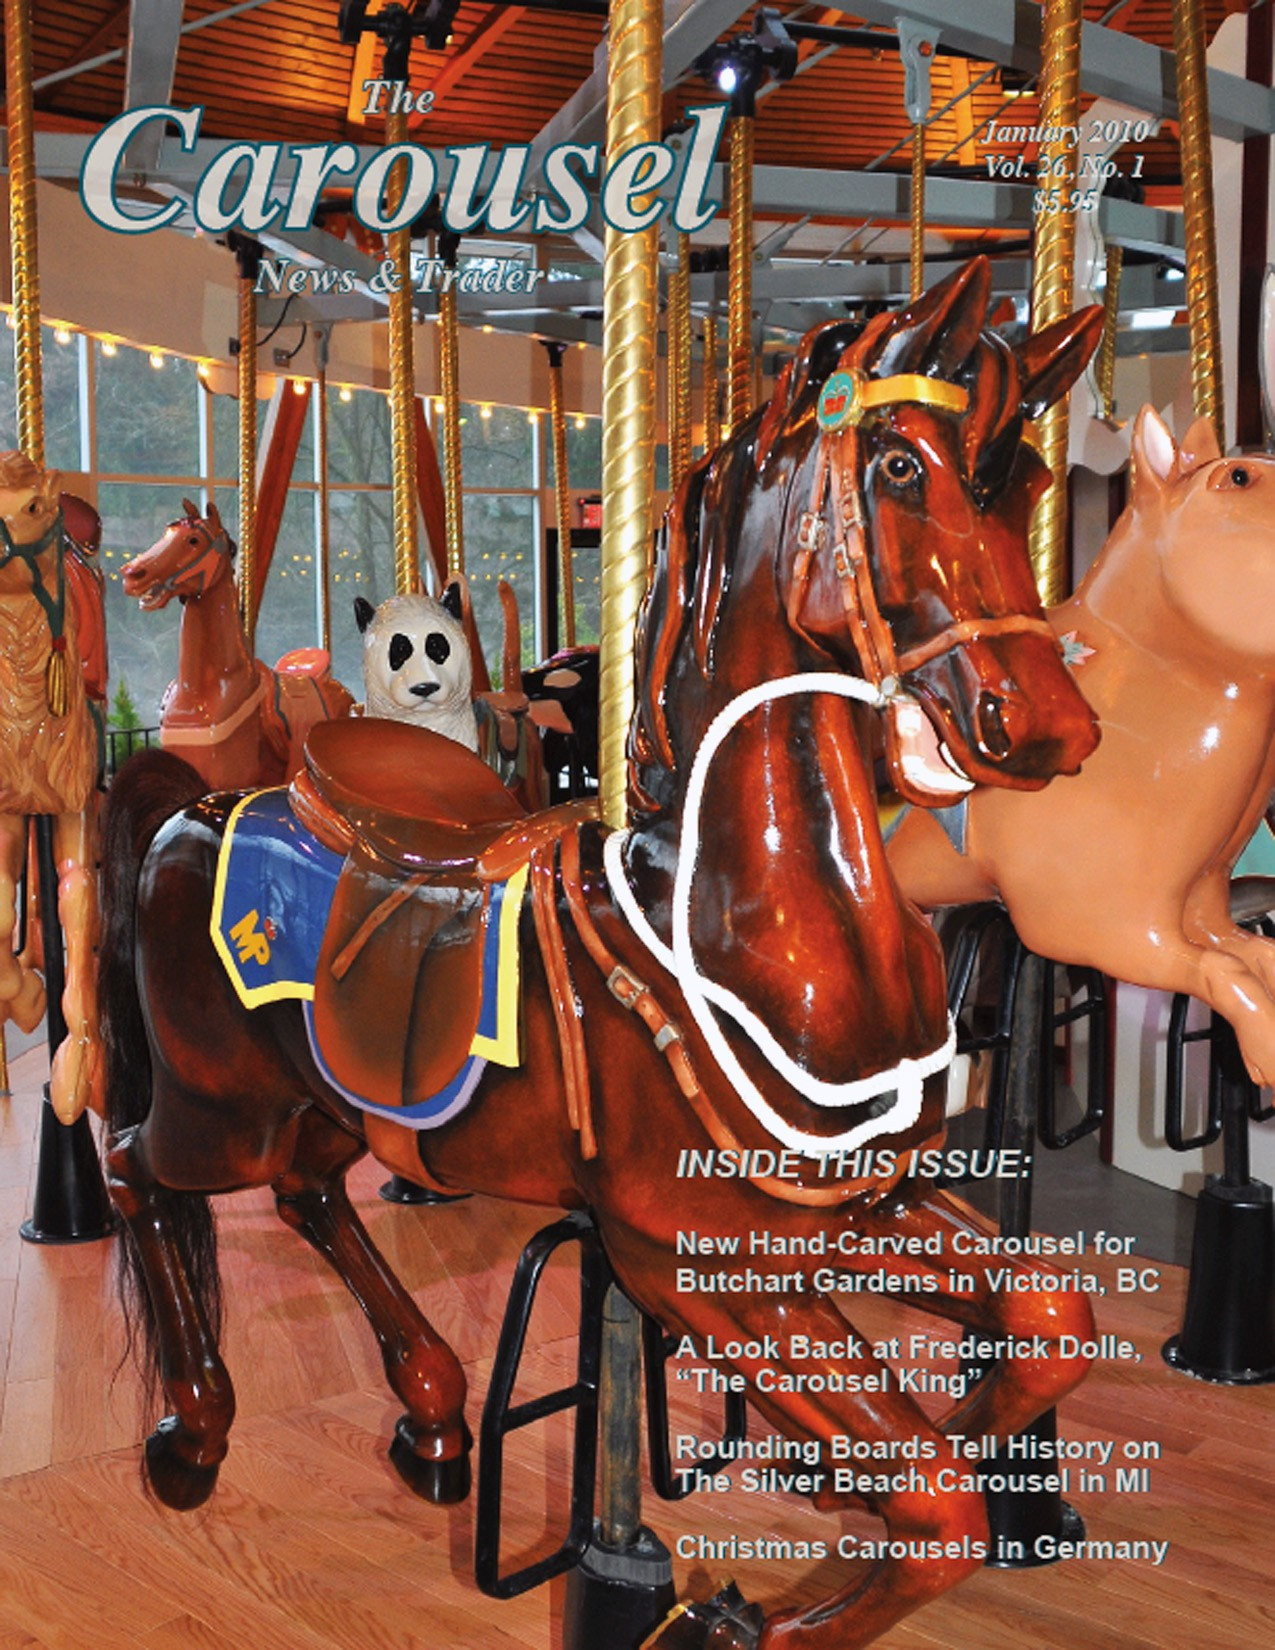 Issue No. 1, Vol. 26 – January 2010